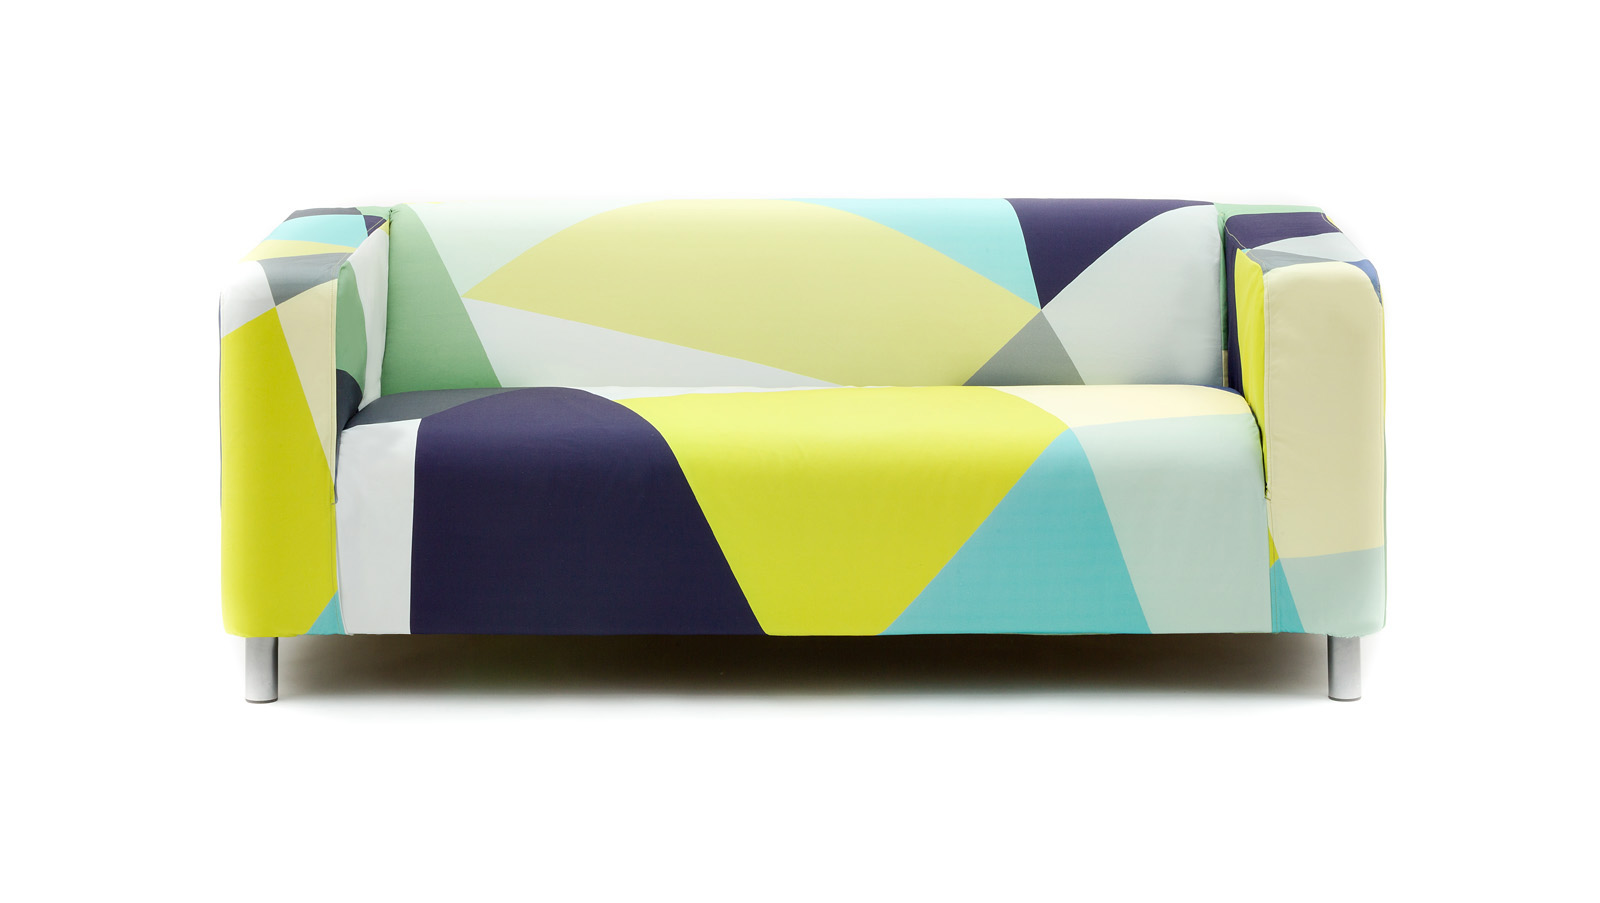 Colorblock ikea klippan sofa cover Klippan loveseat covers